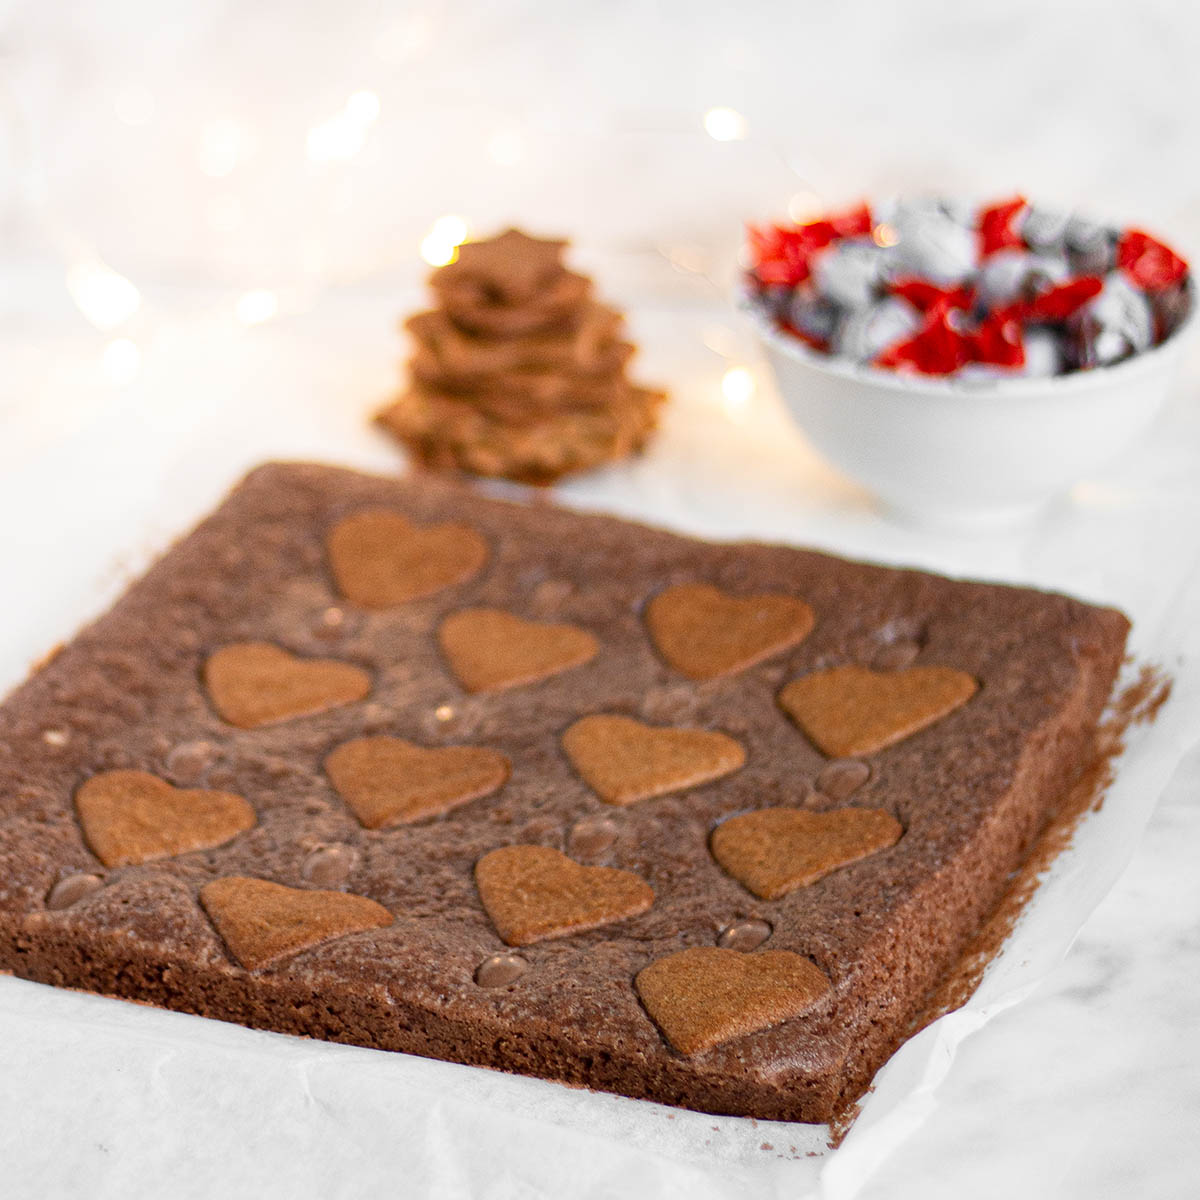 Recept: Pepparkaksbrownie med Kinder Schoko-Bon